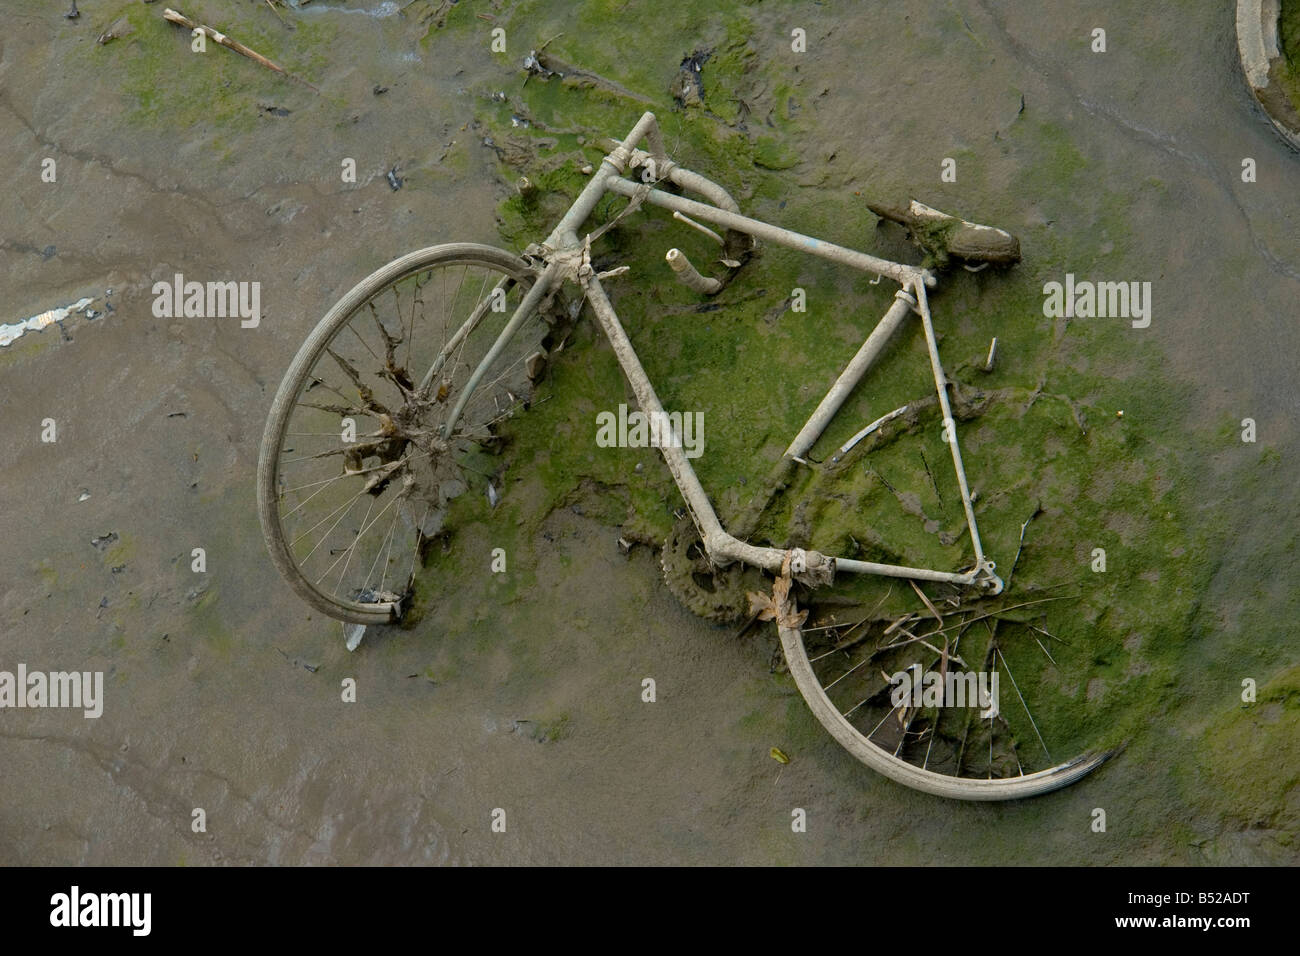 abandoned bike in the mud on the bank of the low tide river Thames in Blackwall - London UK - Stock Image